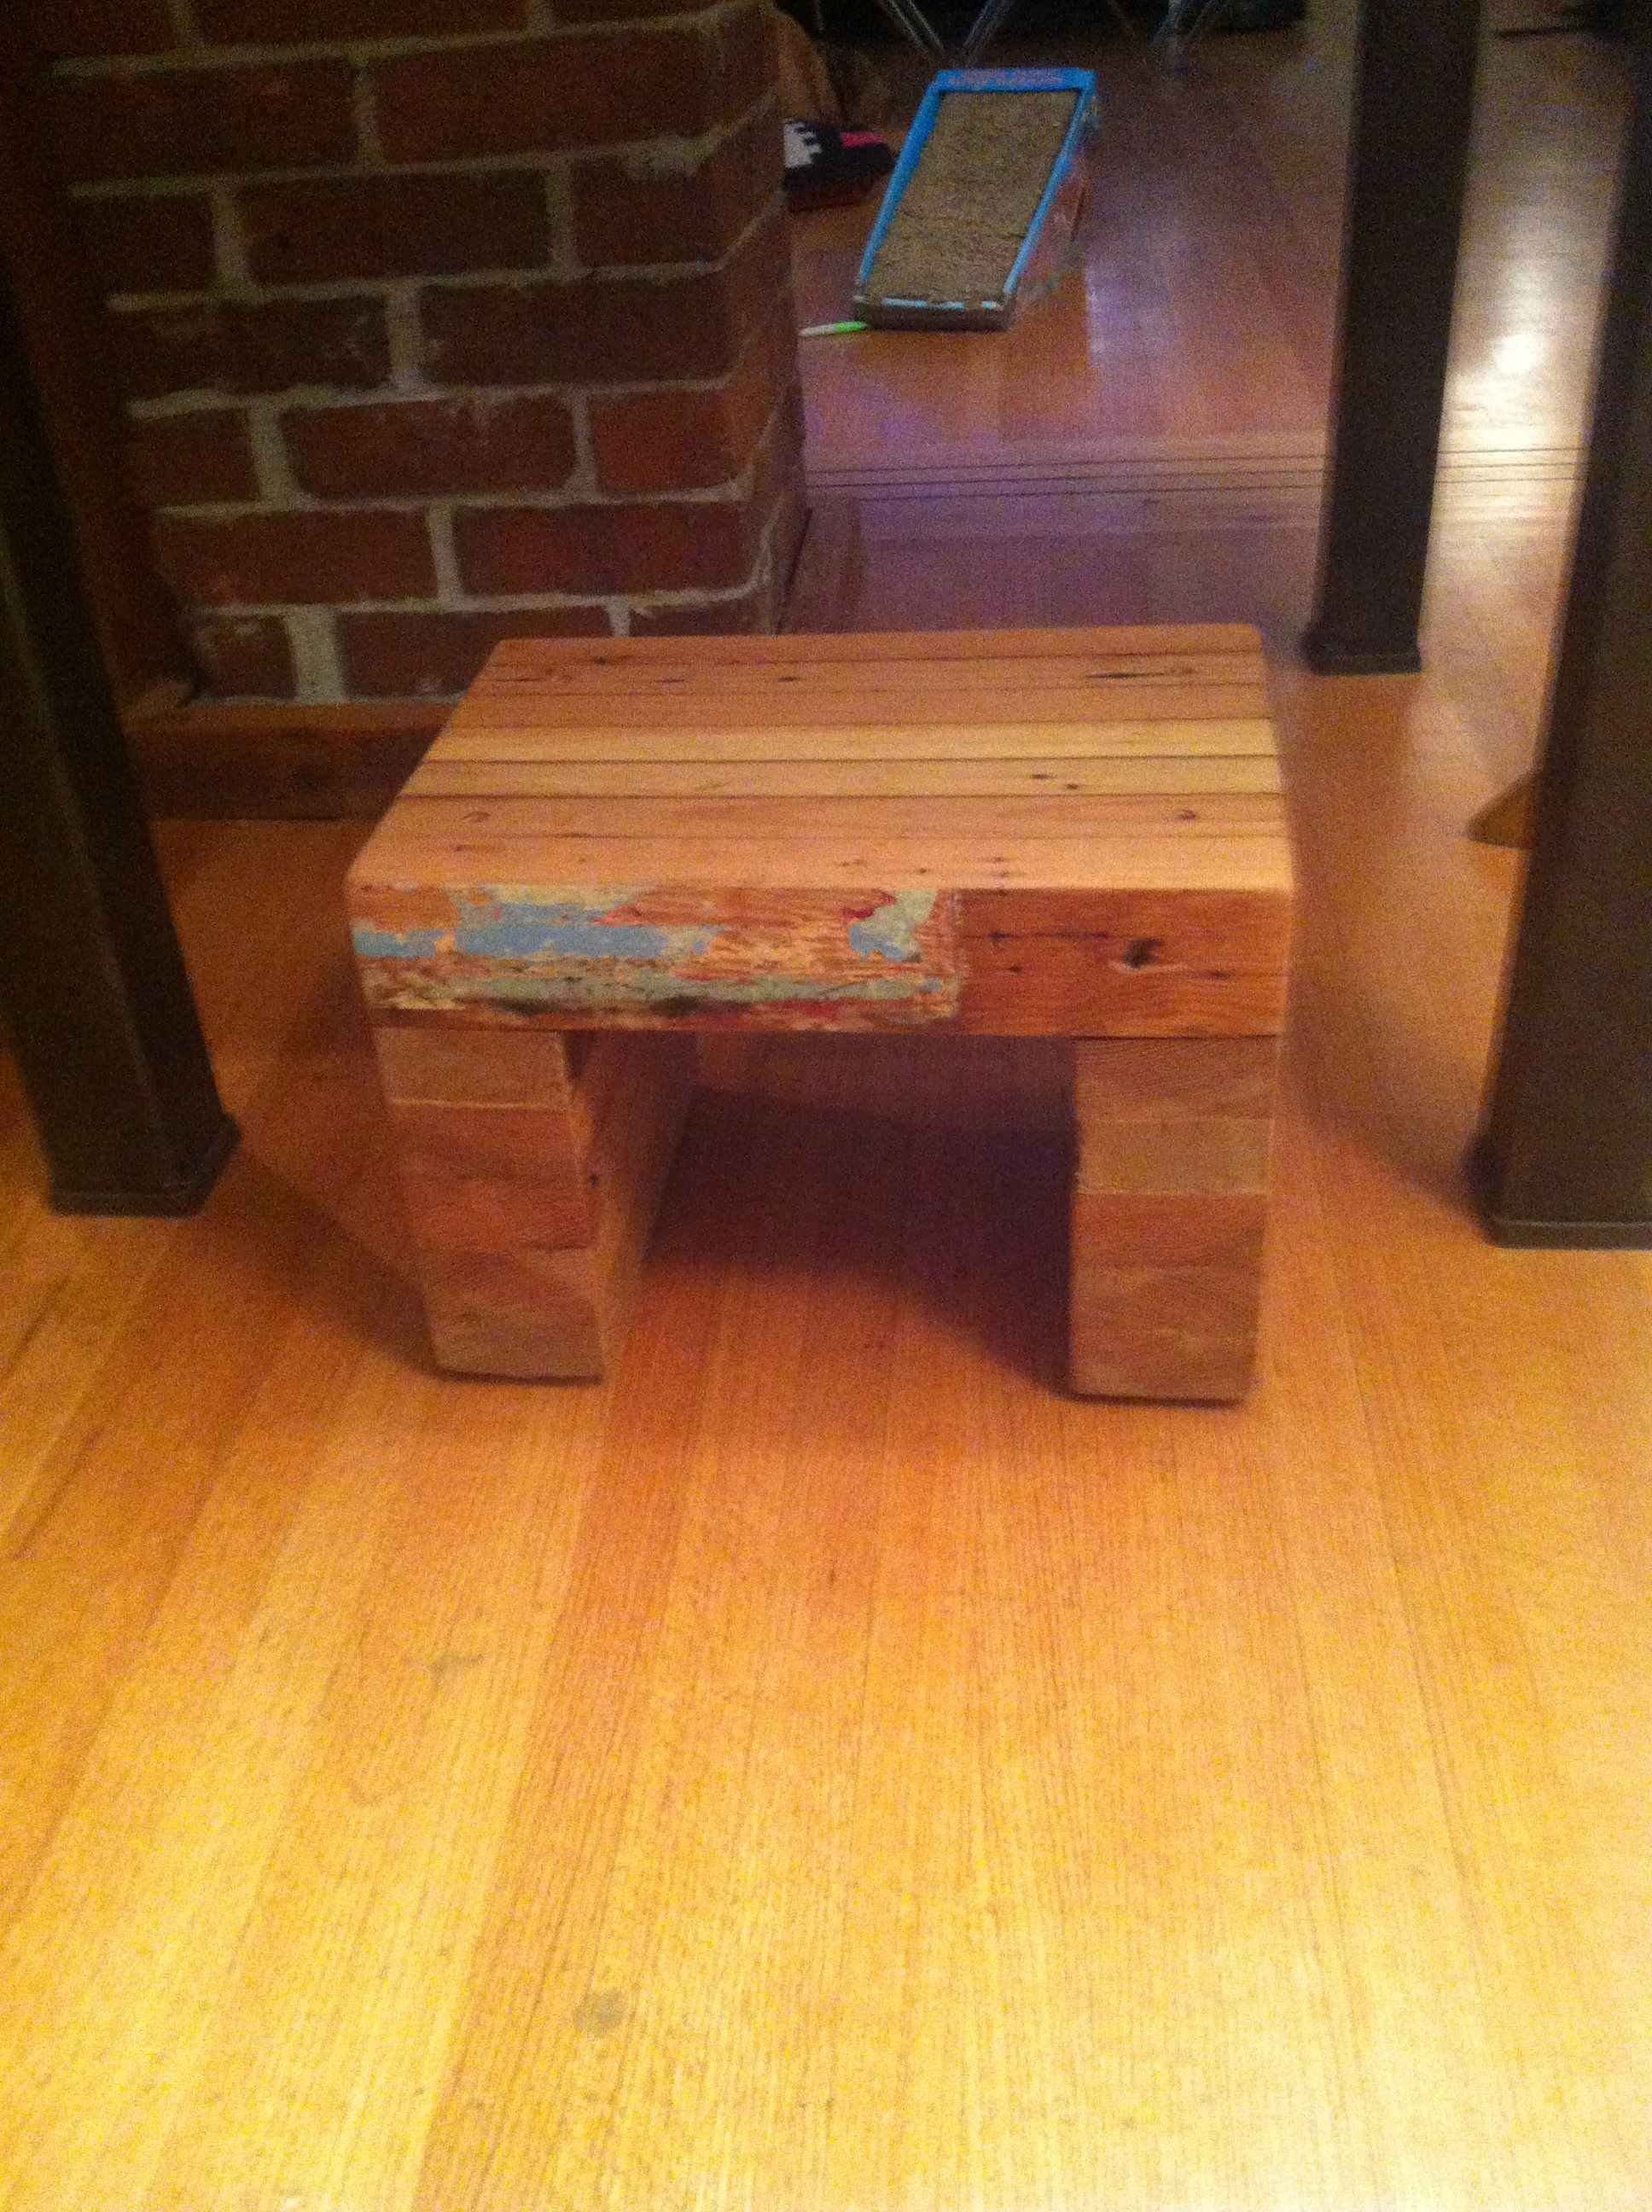 Reclaimed 2x4 Step Stool A Must For My Short Lady Friend Step Stool 2x4 Furniture Wood Diy